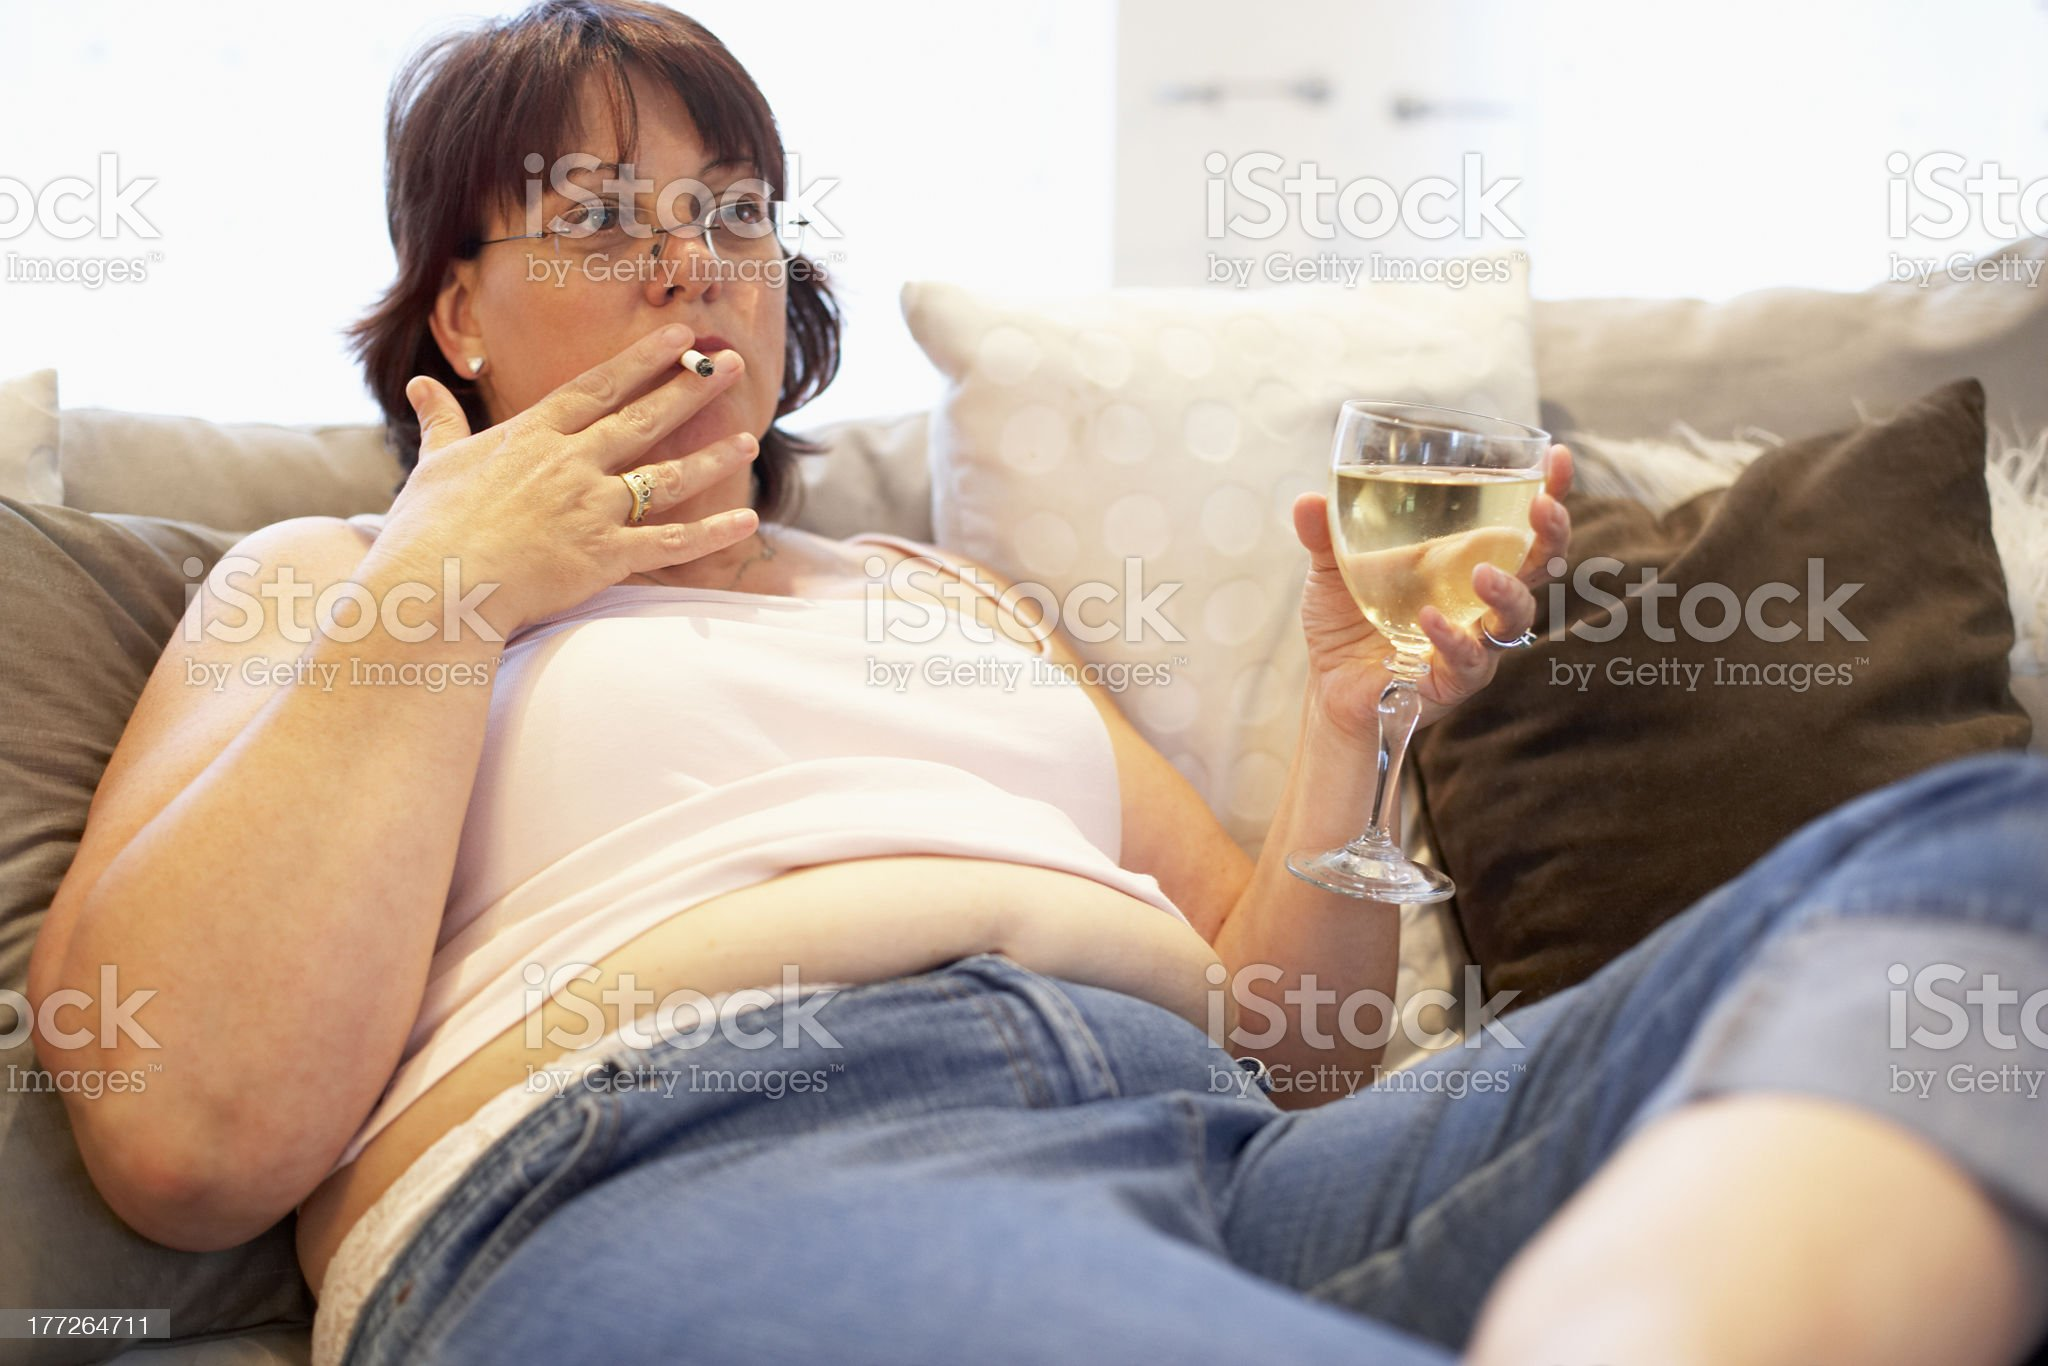 Overweight Woman Relaxing On Sofa royalty-free stock photo